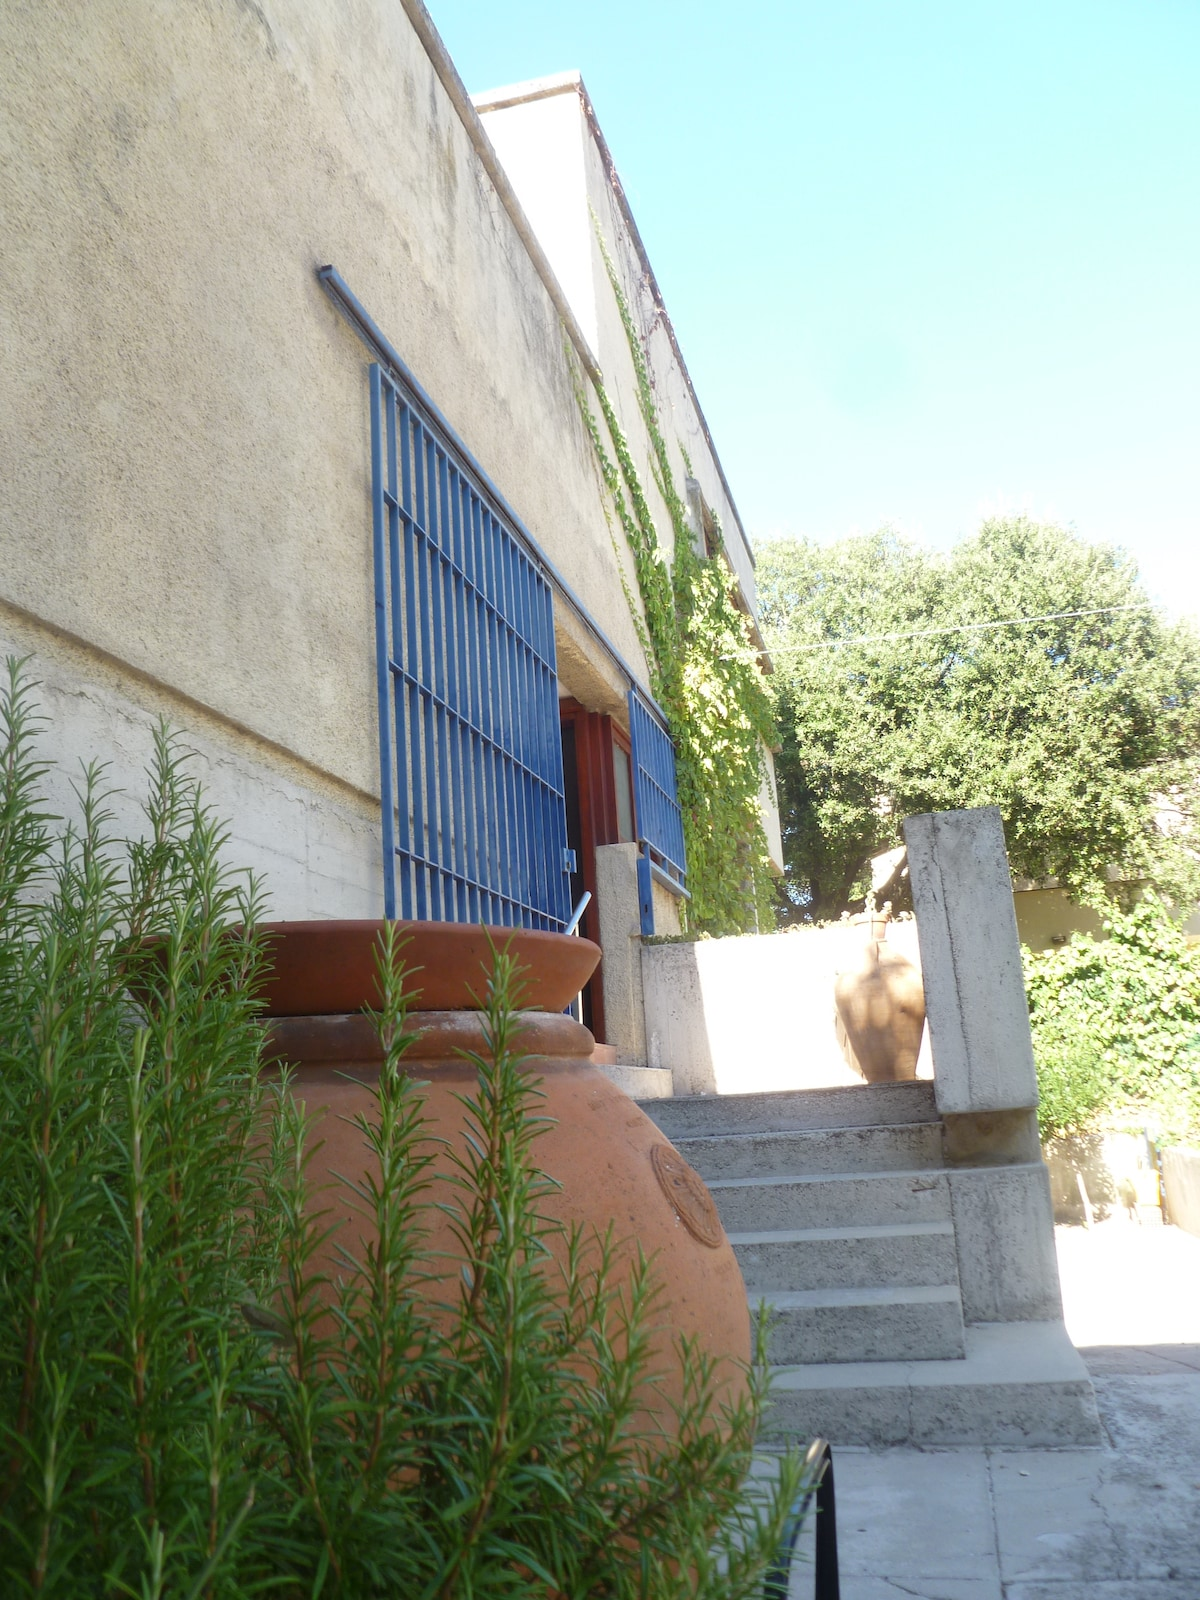 Family House in central Umbria